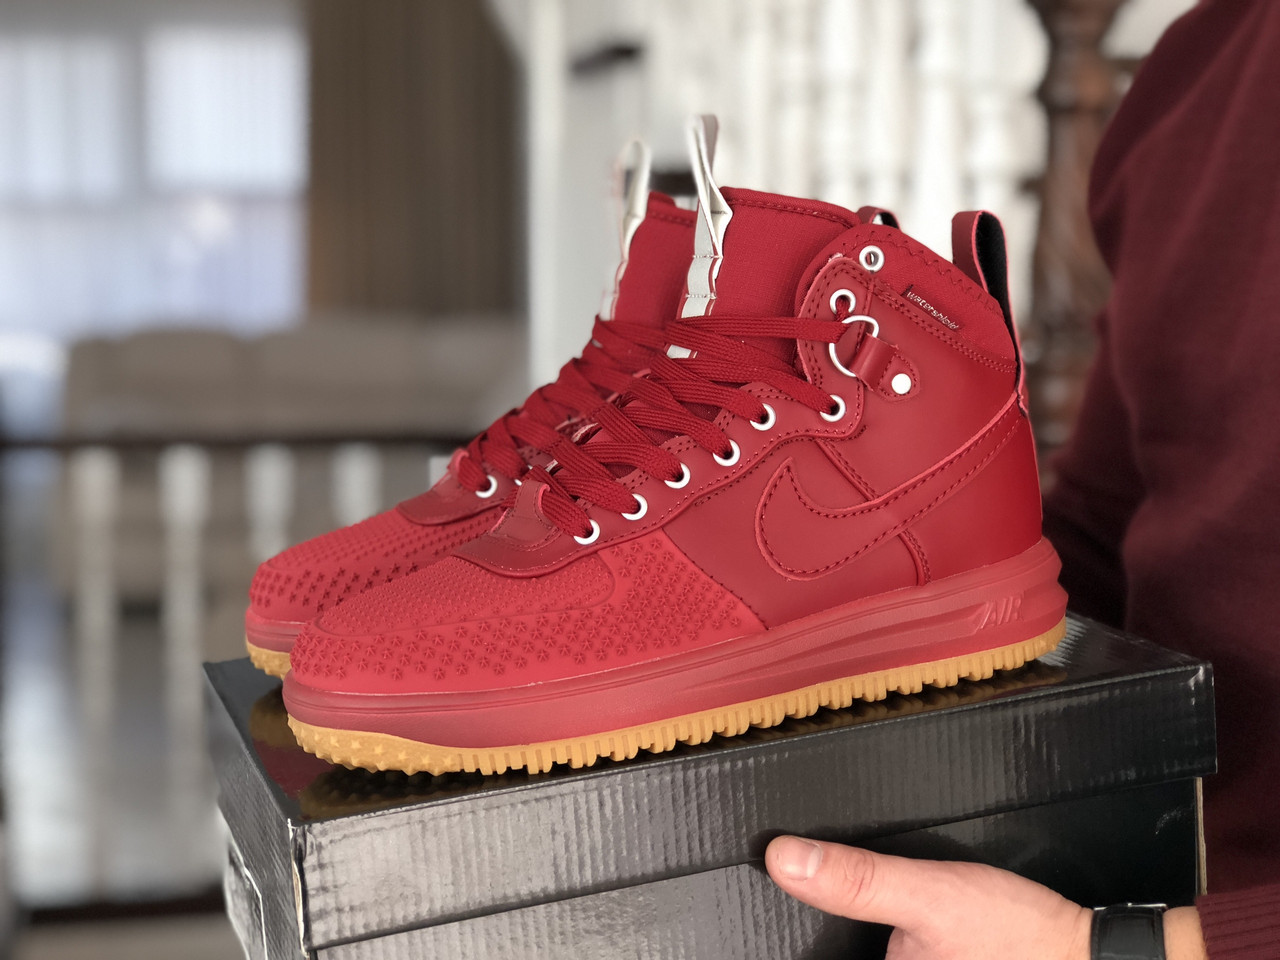 Кроссовки Nike Lunar Force 1 Duckboot, 41-46